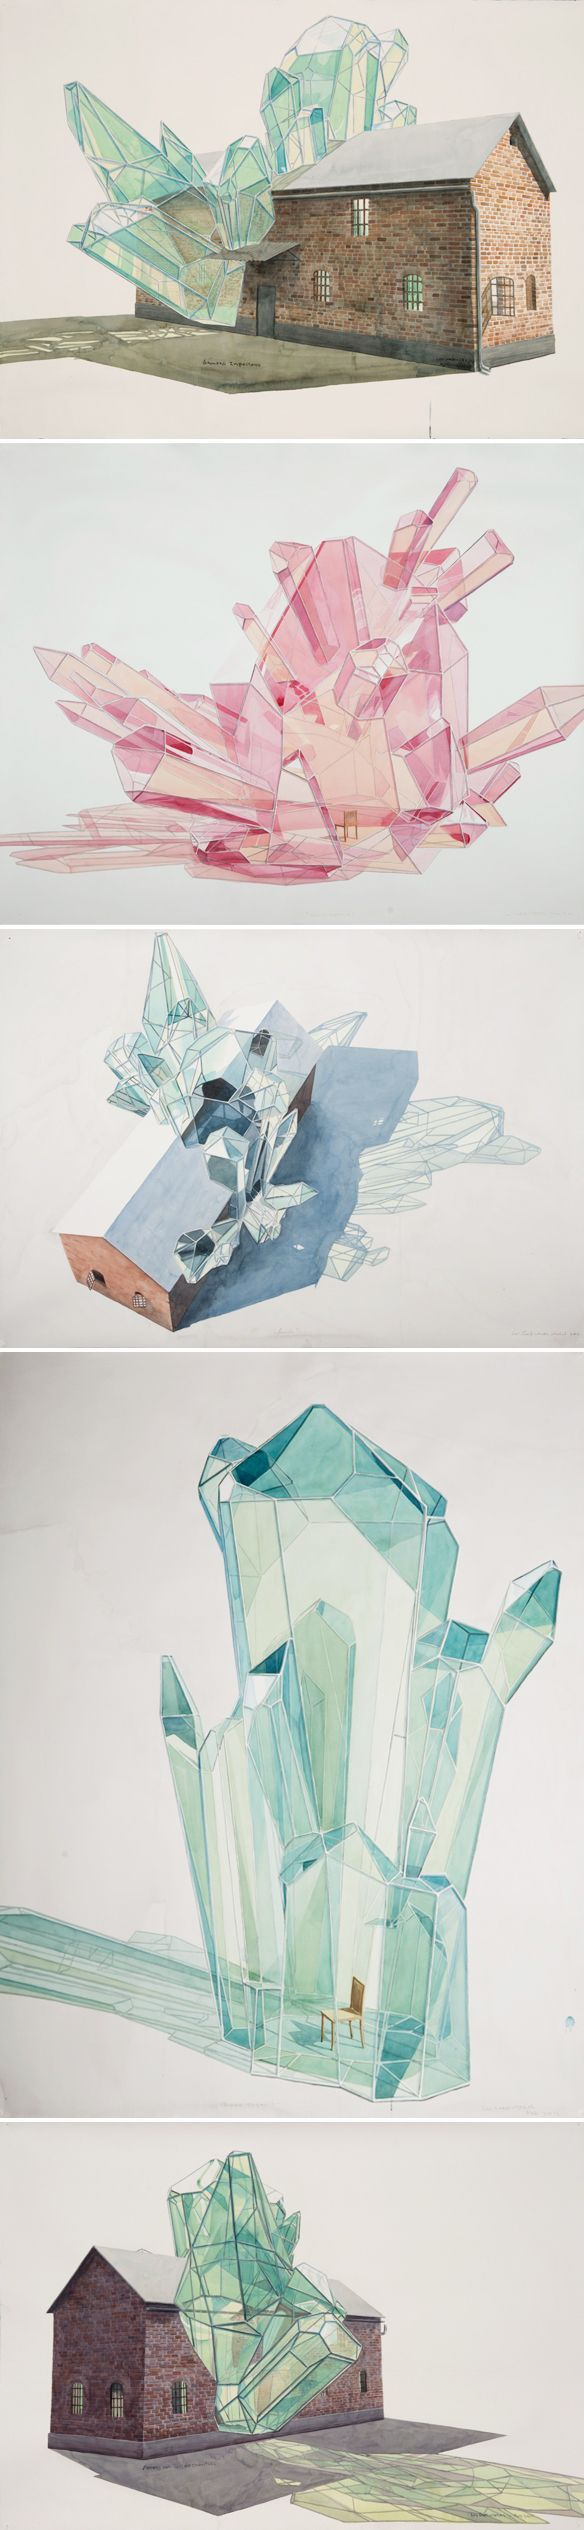 Los Carpinteros. Houses, and wooden chairs, being taken over by geometric, glass-like crystal formations.: